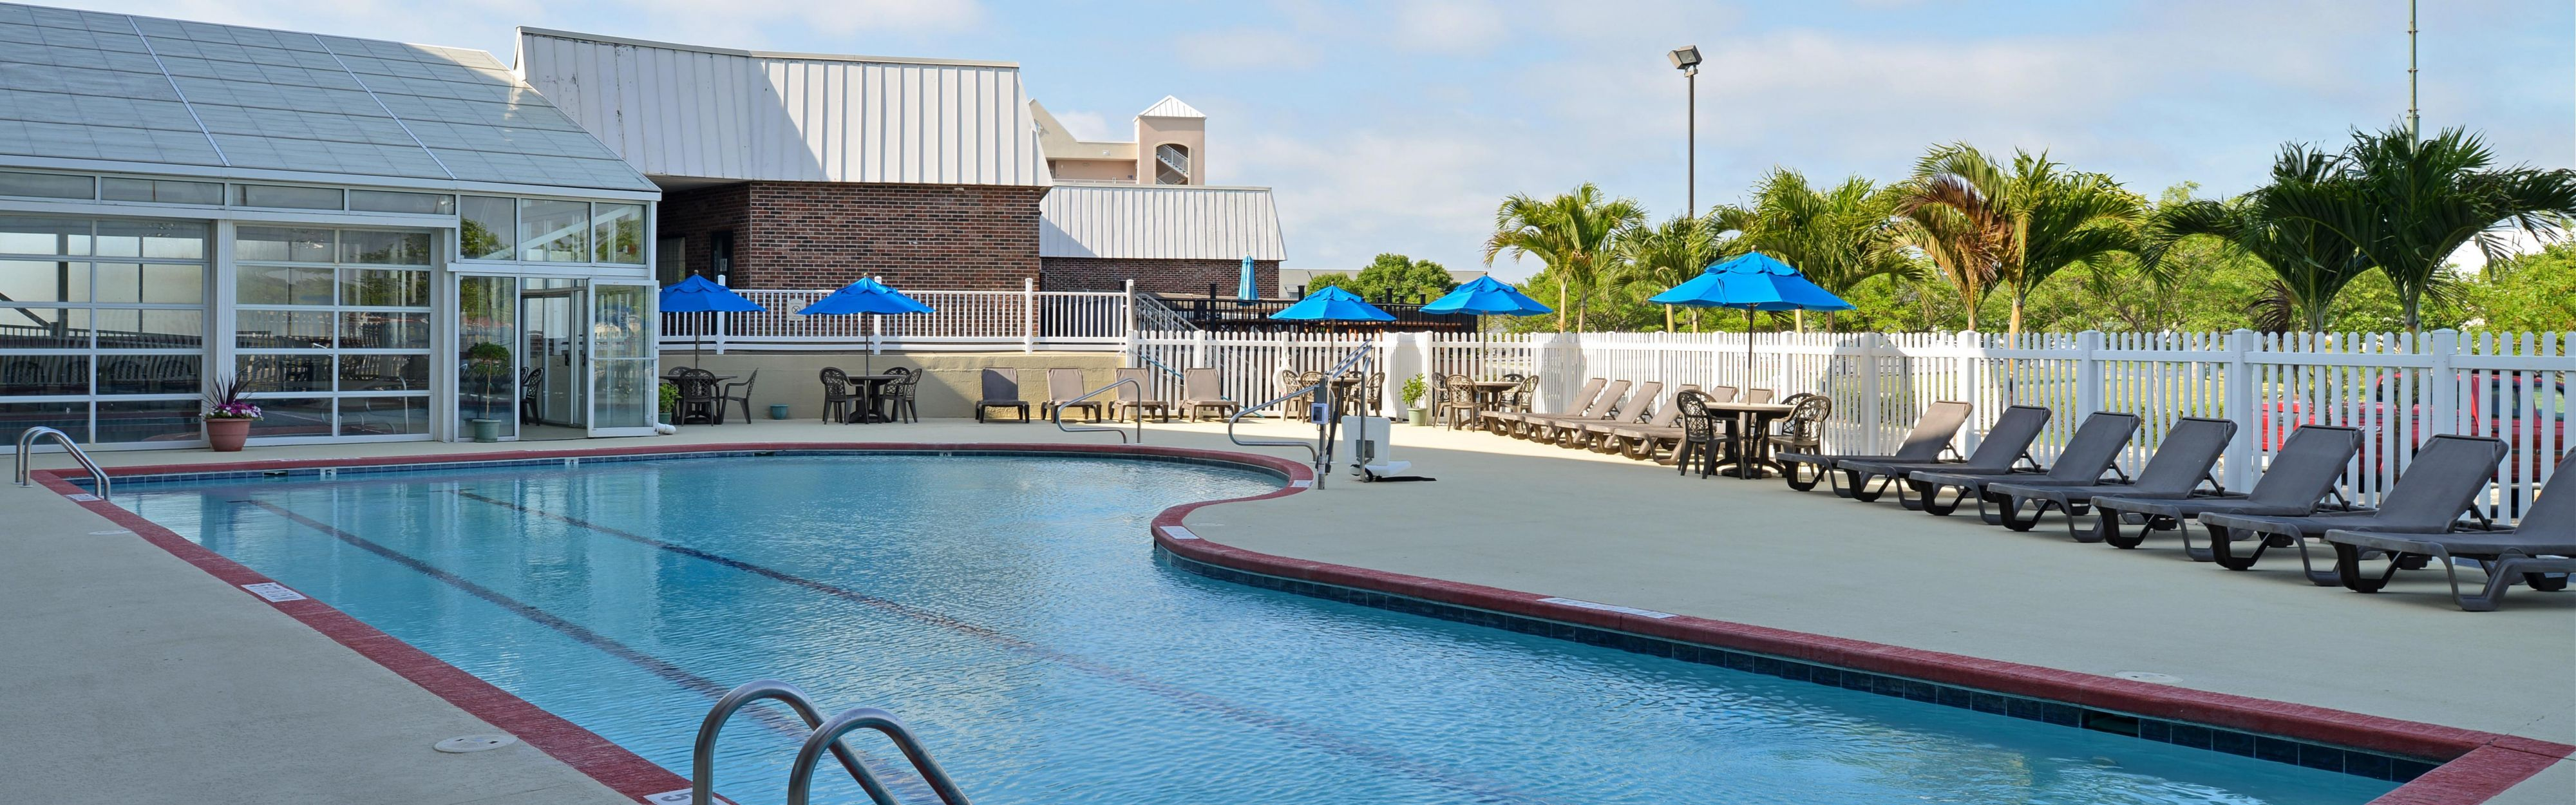 Holiday Inn Express & Suites Ocean City image 2